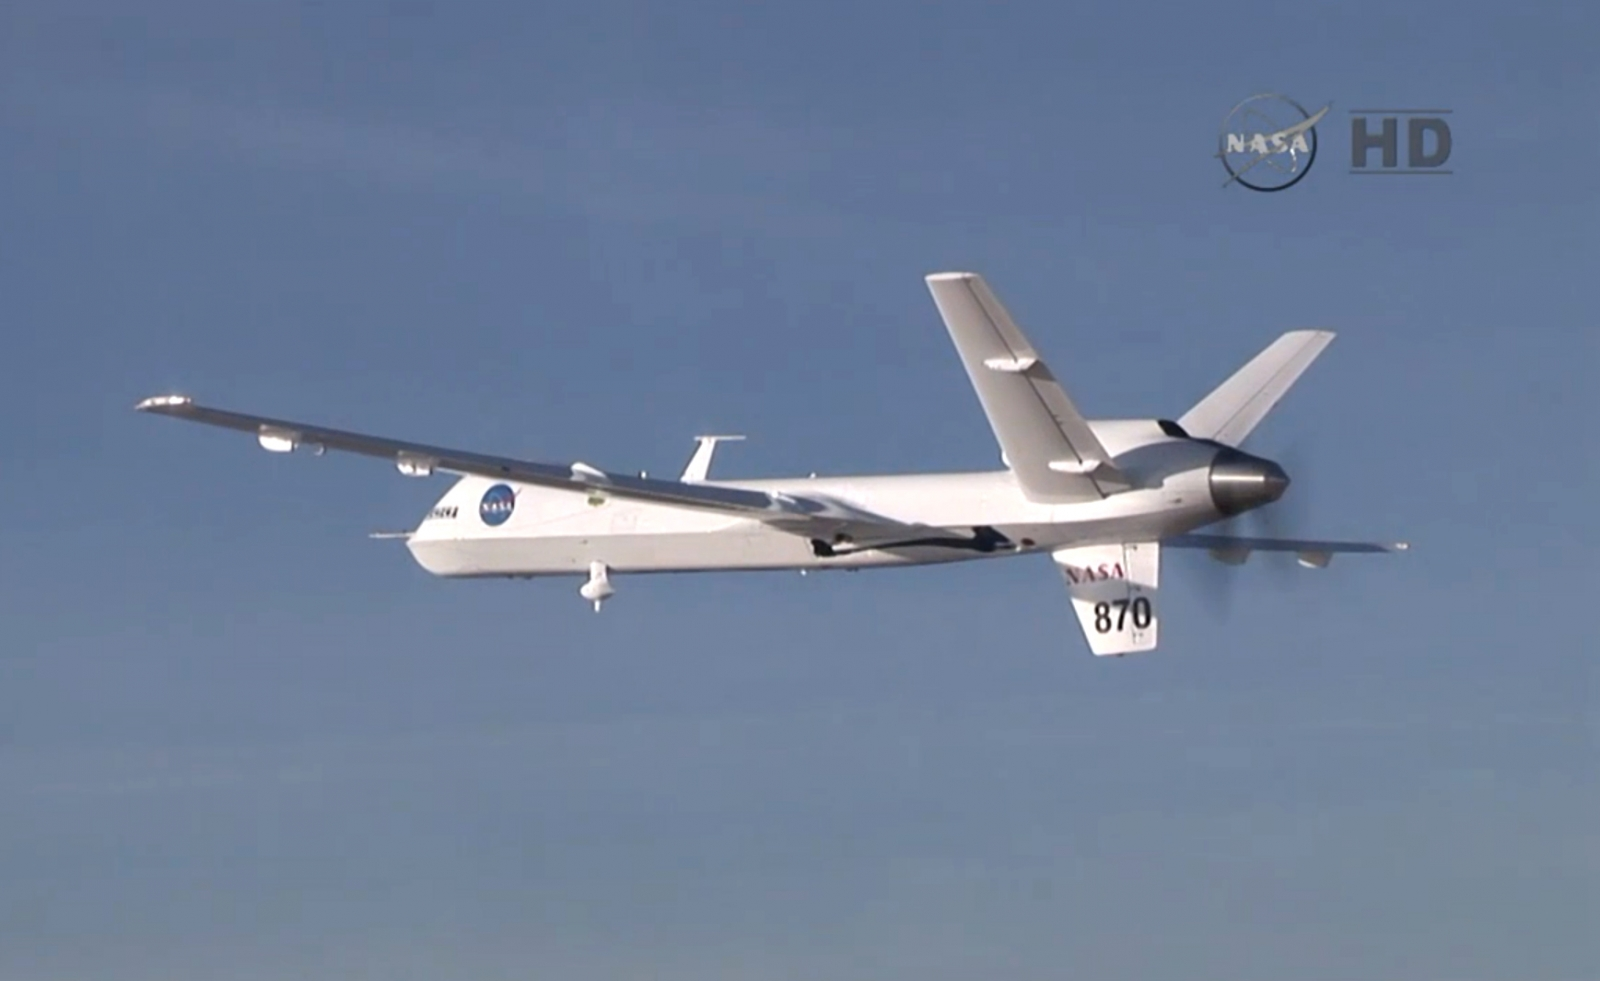 Nasa's Ikhana unmanned aerial vehicle that took video footage from the air over the Pacific ocean